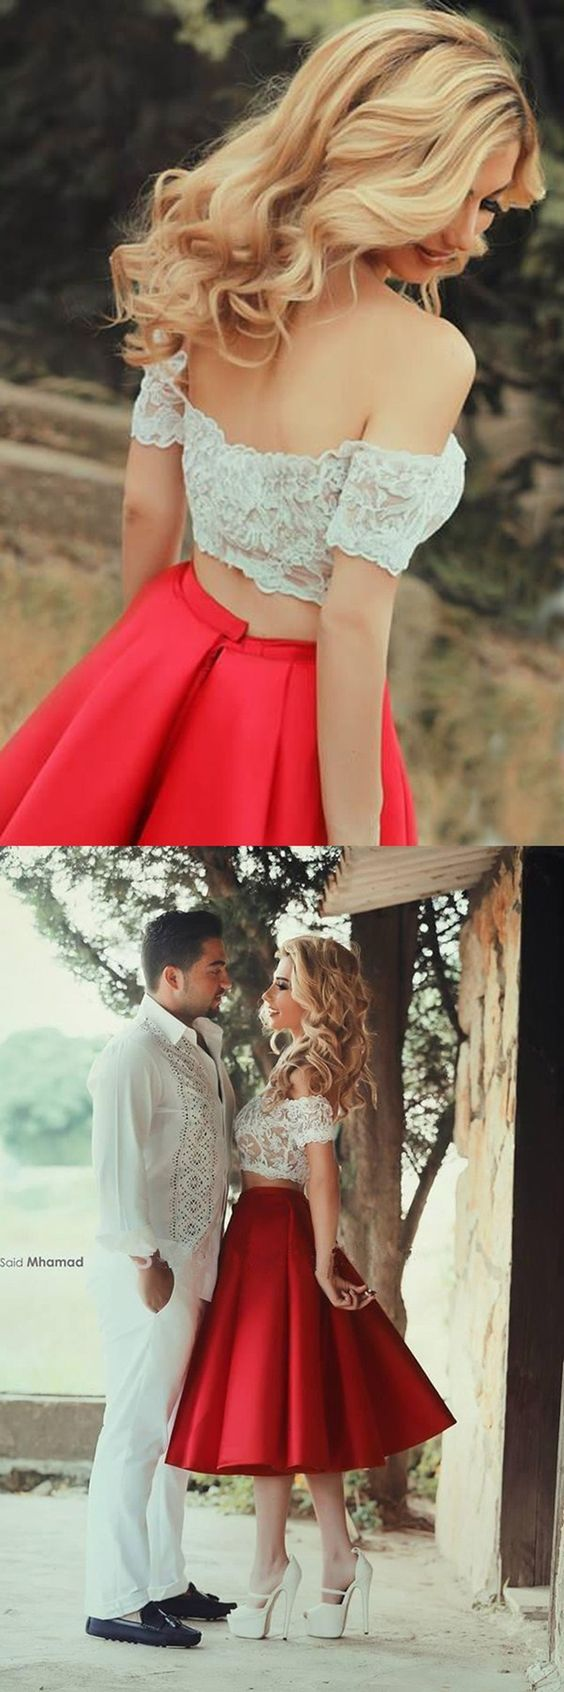 homecoming dress,two-piece homecoming dress,red homecoming dress,cheap homecoming dress,prom dress,short prom dress,party dress,red party dress: